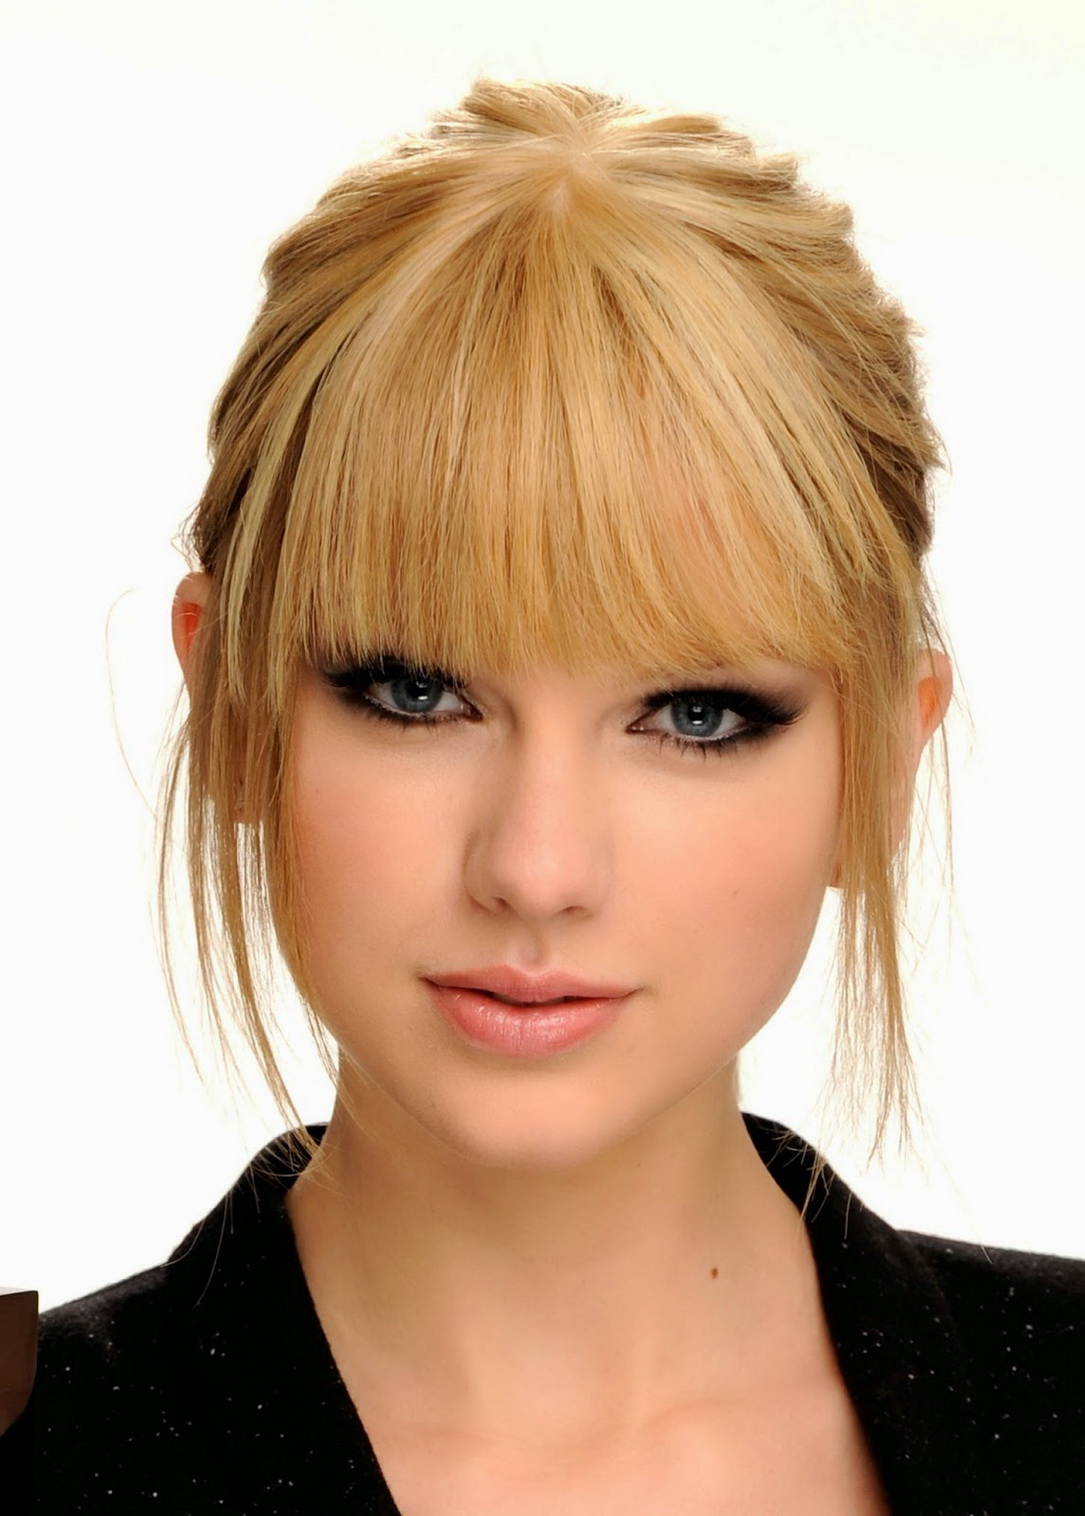 Best Style Hairpunky Taylor Swift Beauty Girls Cute Curly Hairstyles